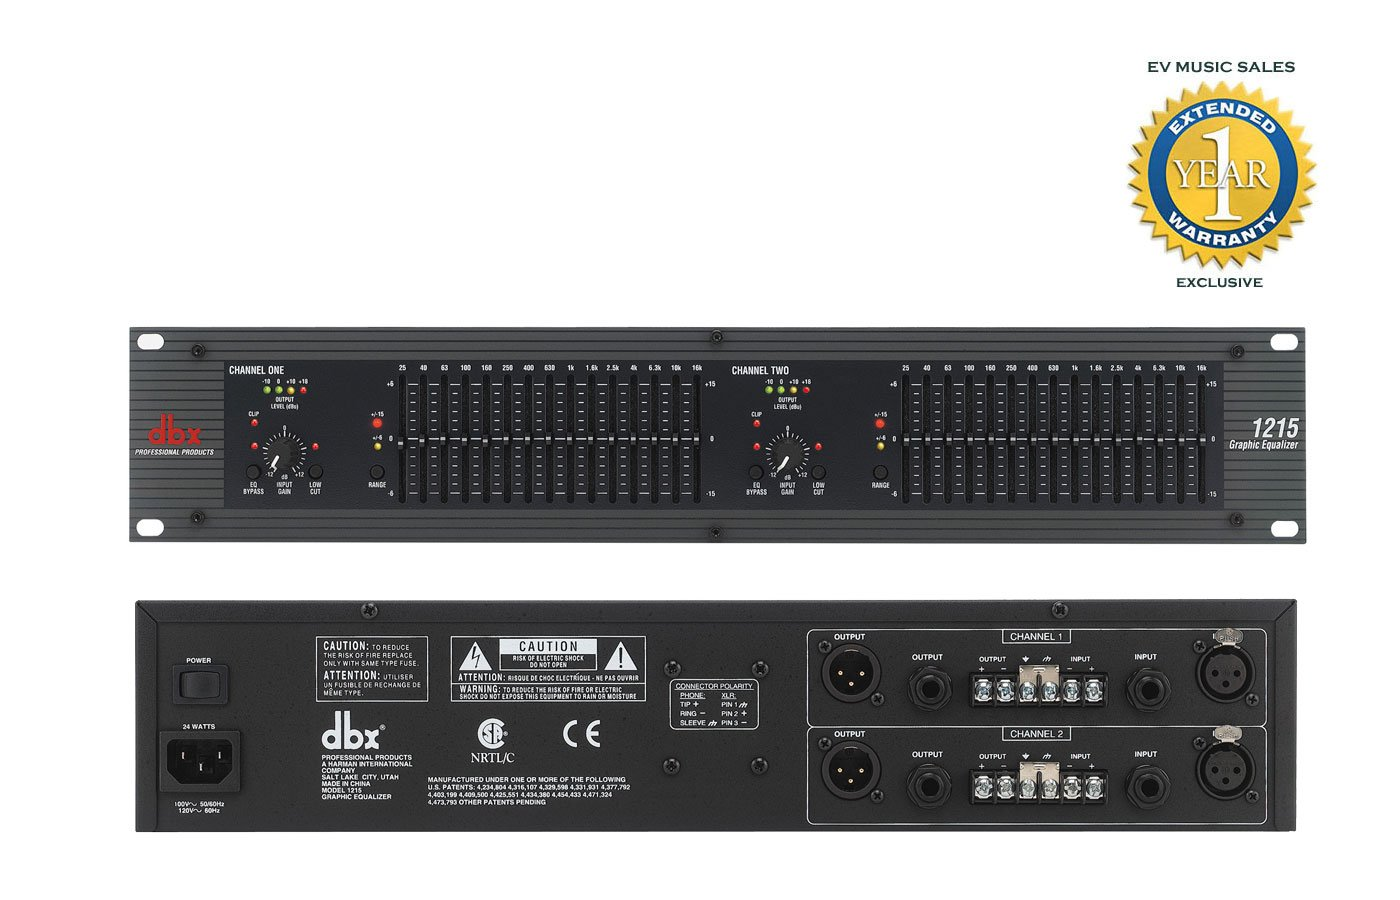 dbx 1215 Dual Channel 15-Band Equalizer with 1 Year Free Extended Warranty